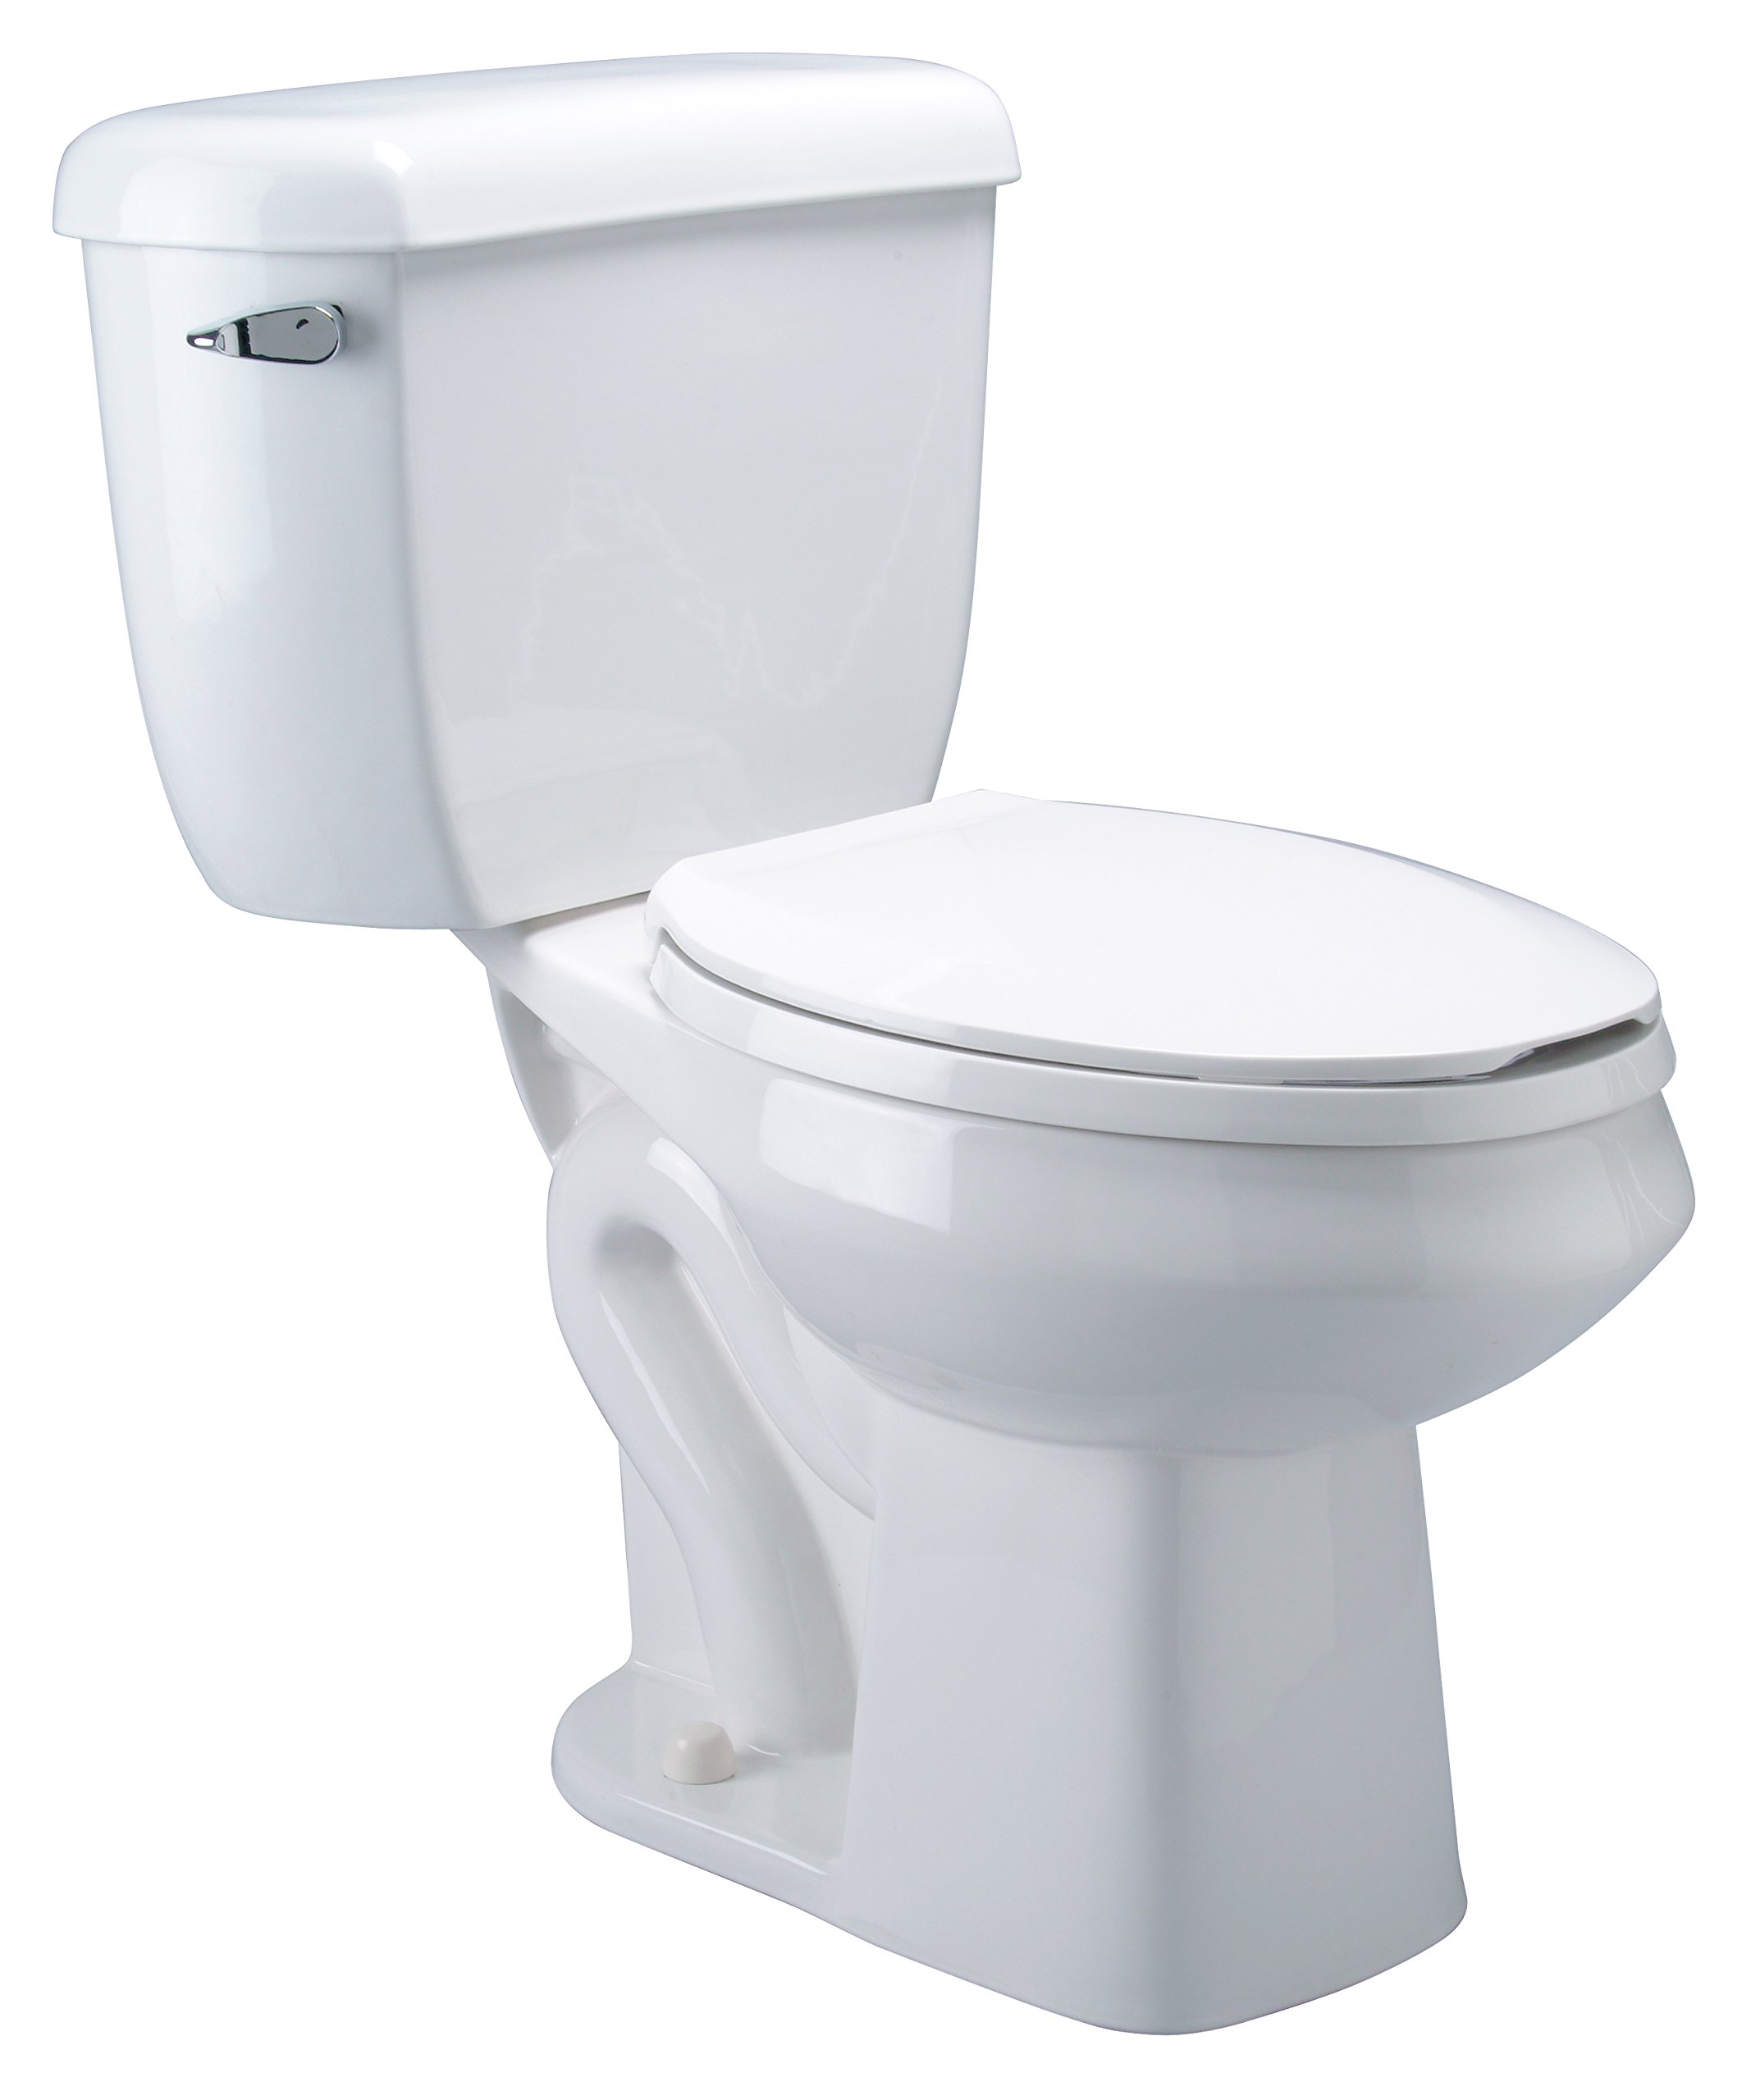 Zurn Z5572 Dual Flush, Elongated Pressure Assist, 1.6/1.0 gpf, Two-Piece Toilet